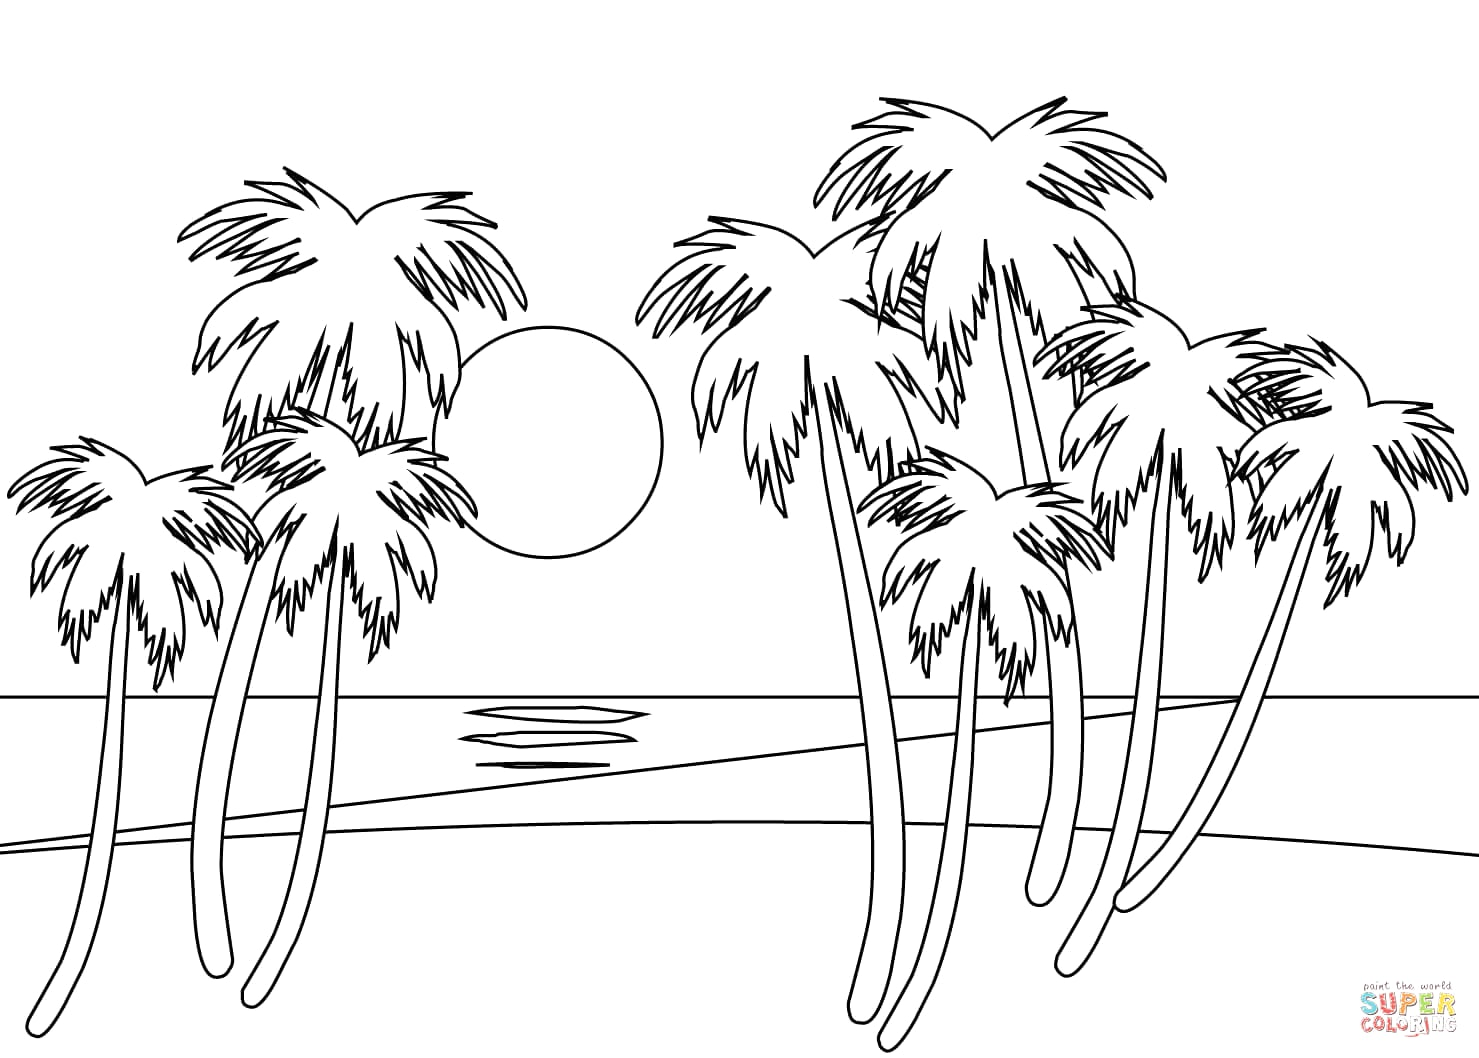 Sunset Line Drawing At Getdrawings